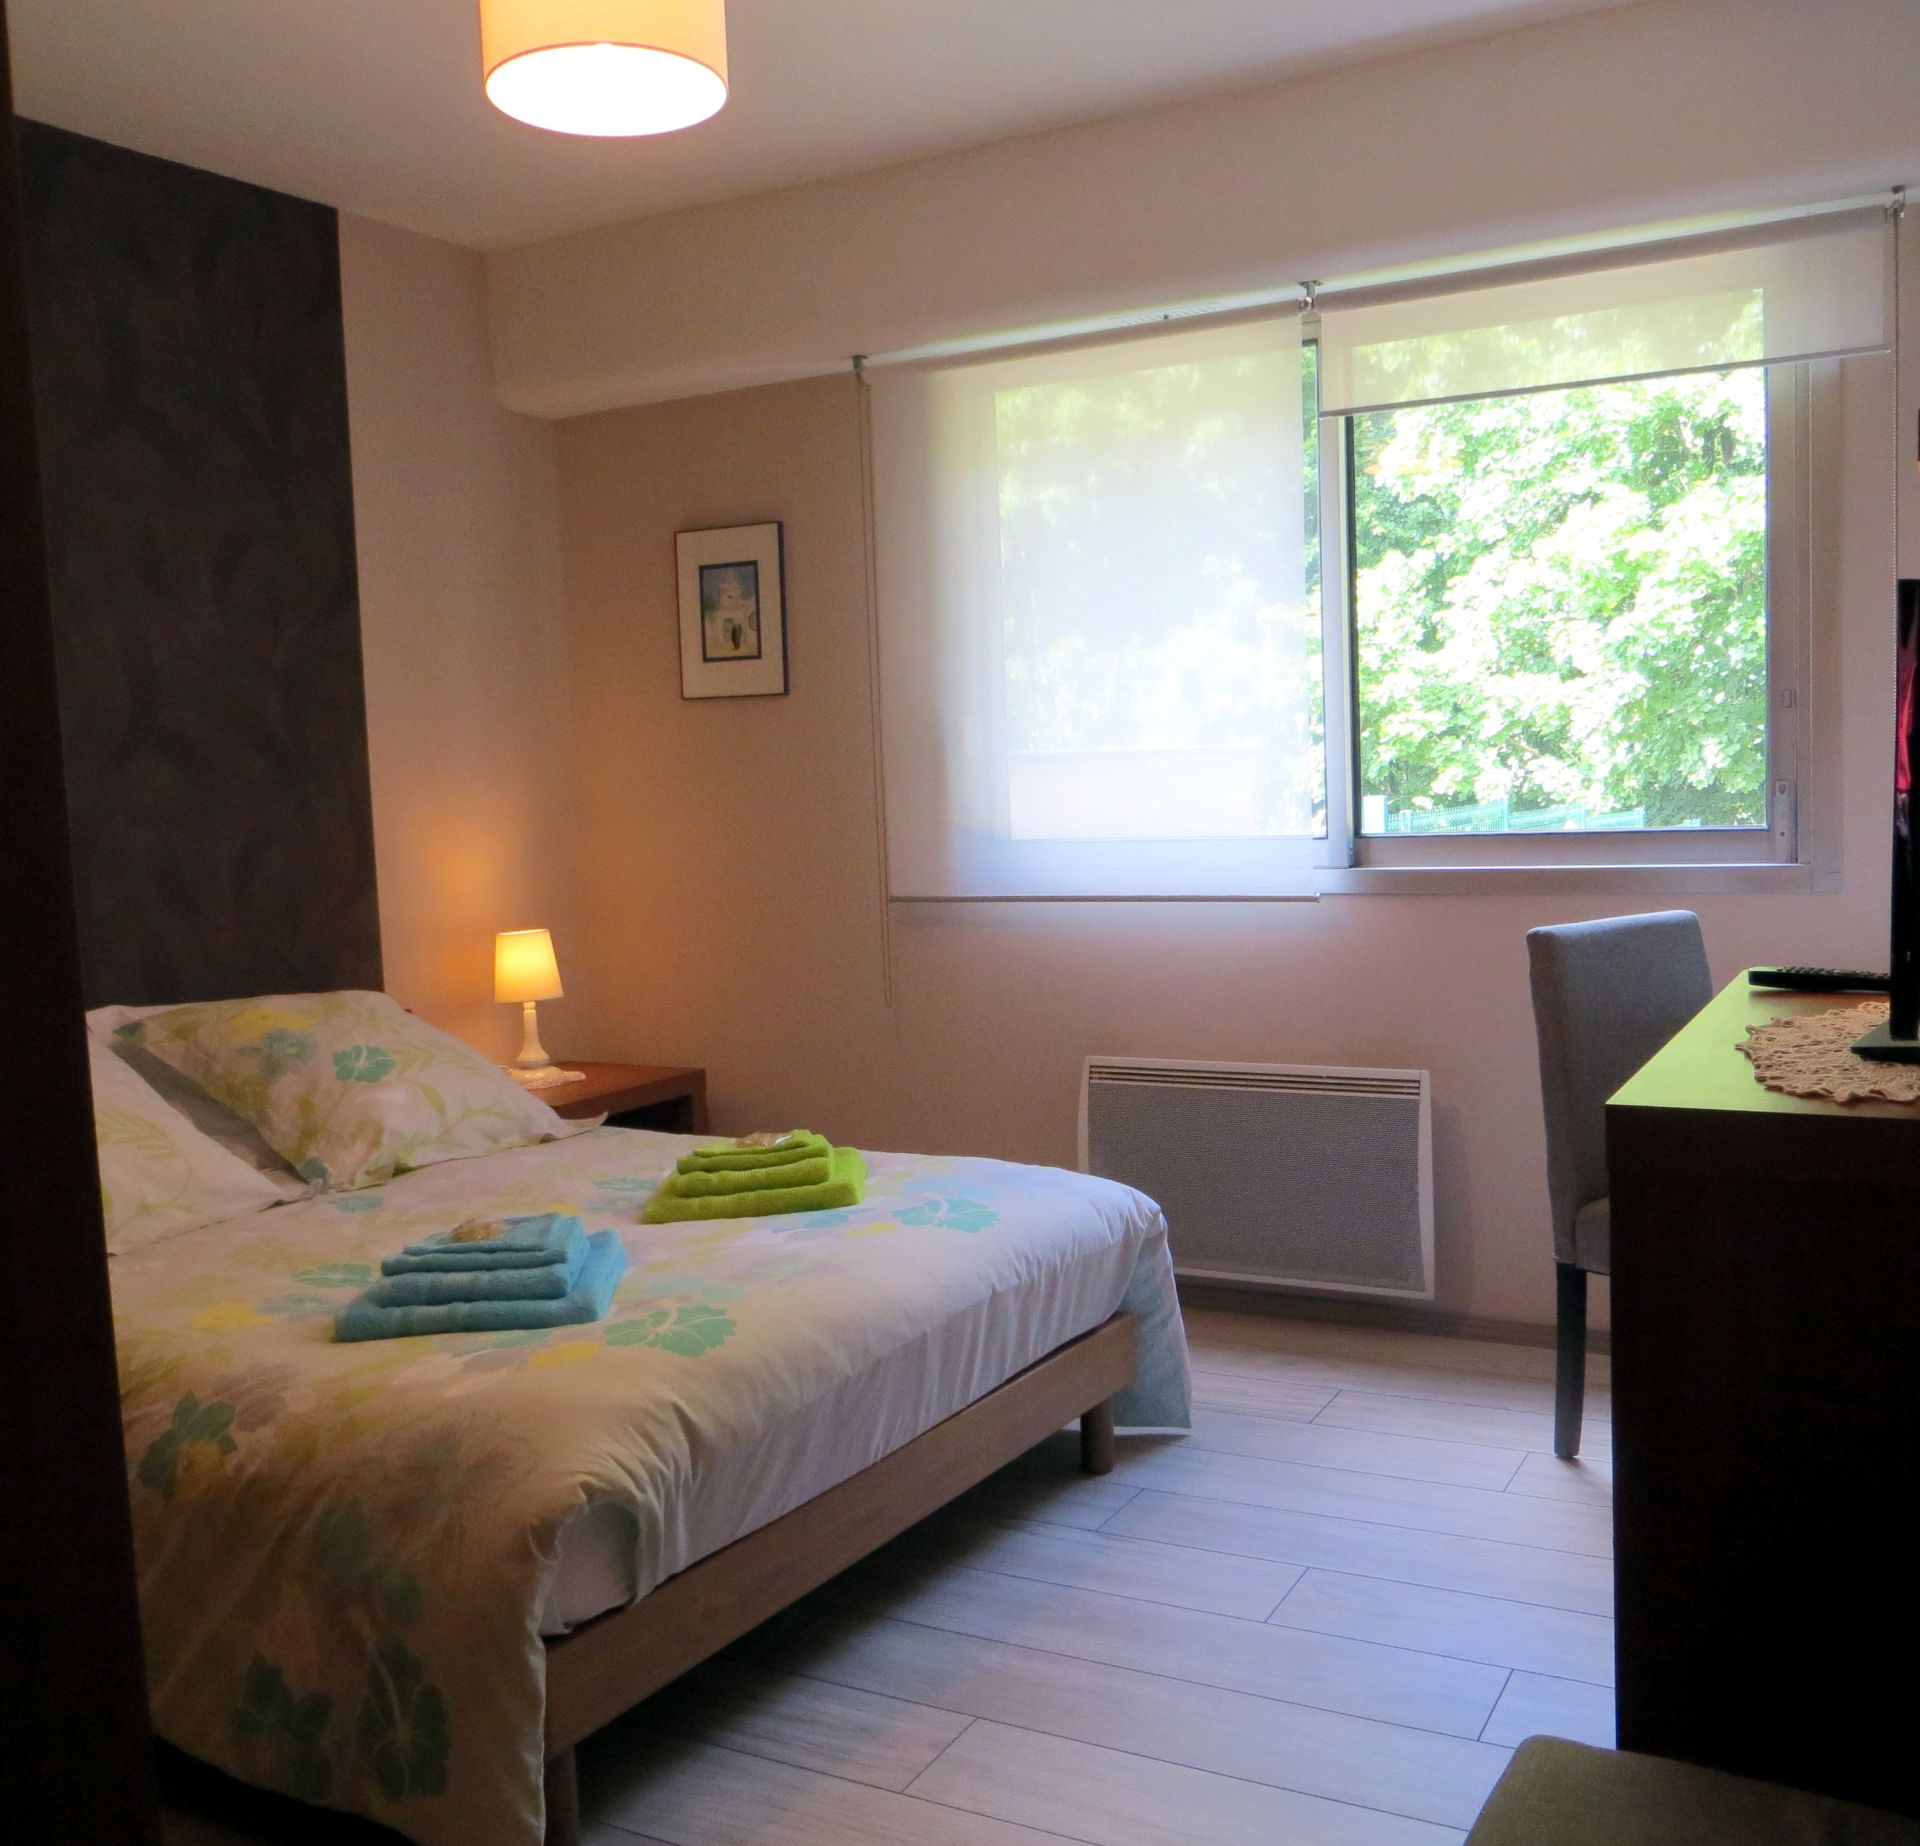 Chambres d 39 hotes mes oasis lorraine tourisme for Chambre hote 93